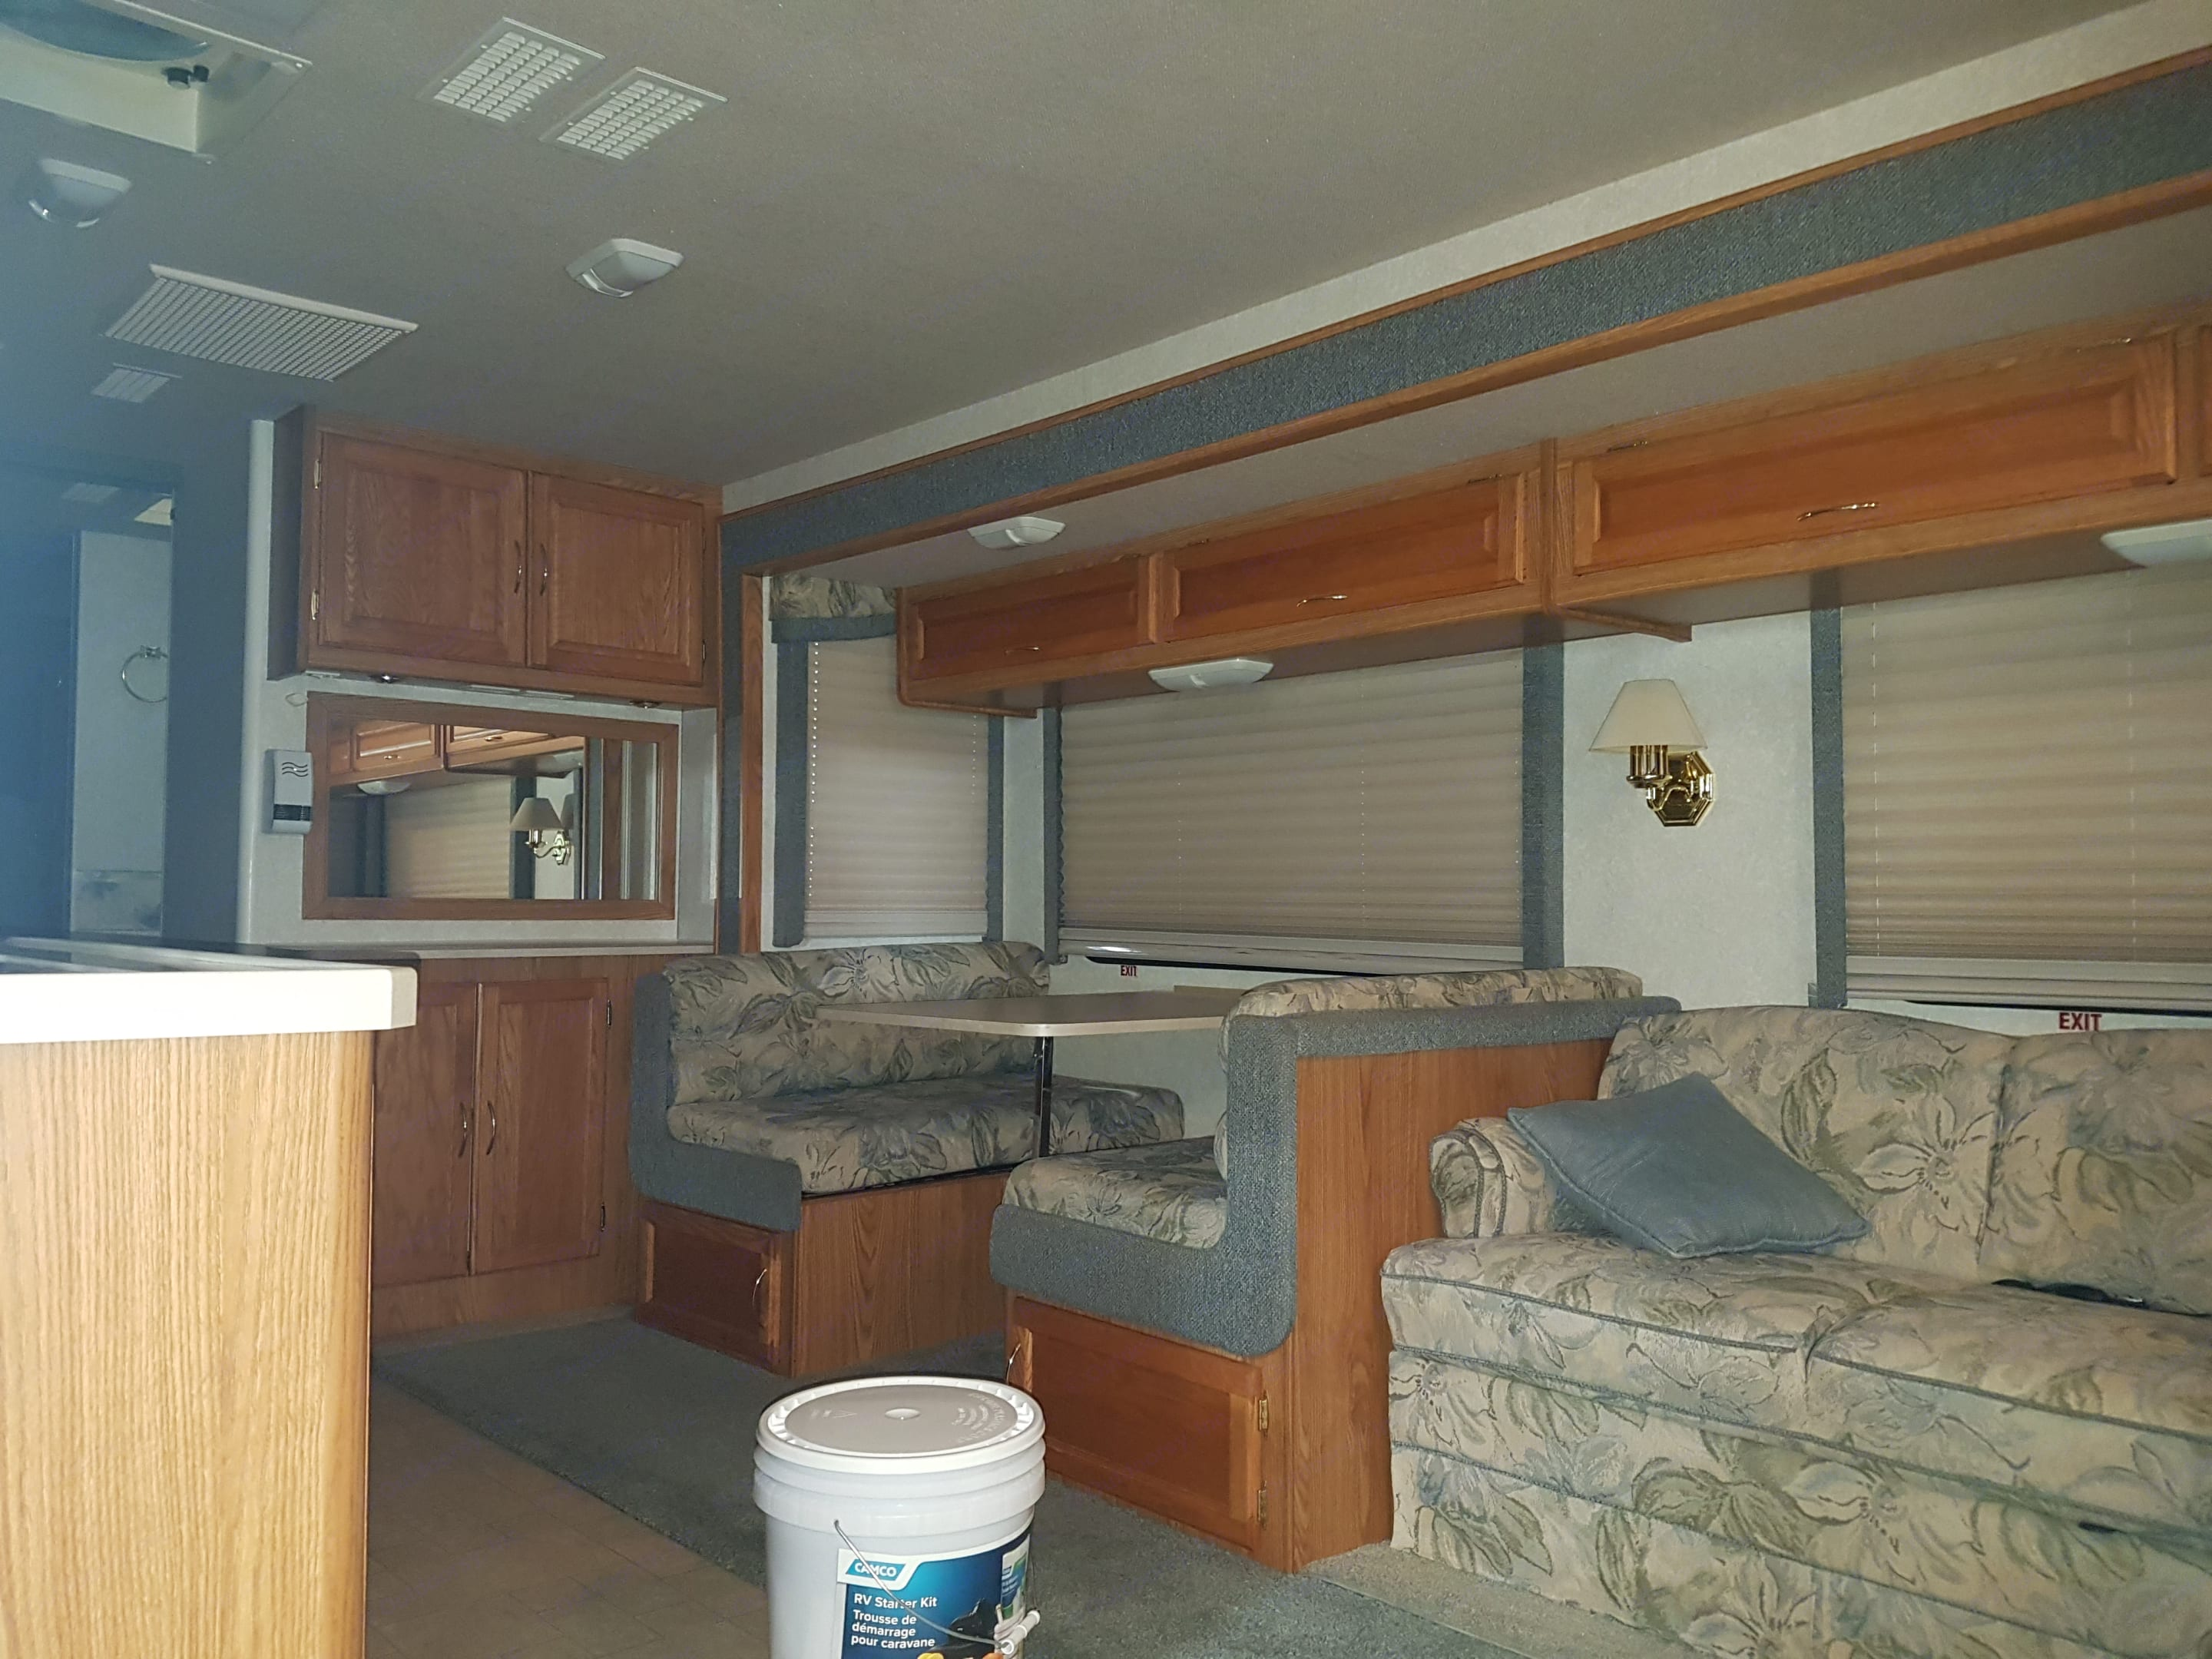 Very confortable With aircondition and Heater. Fleetwood Bounder 2003